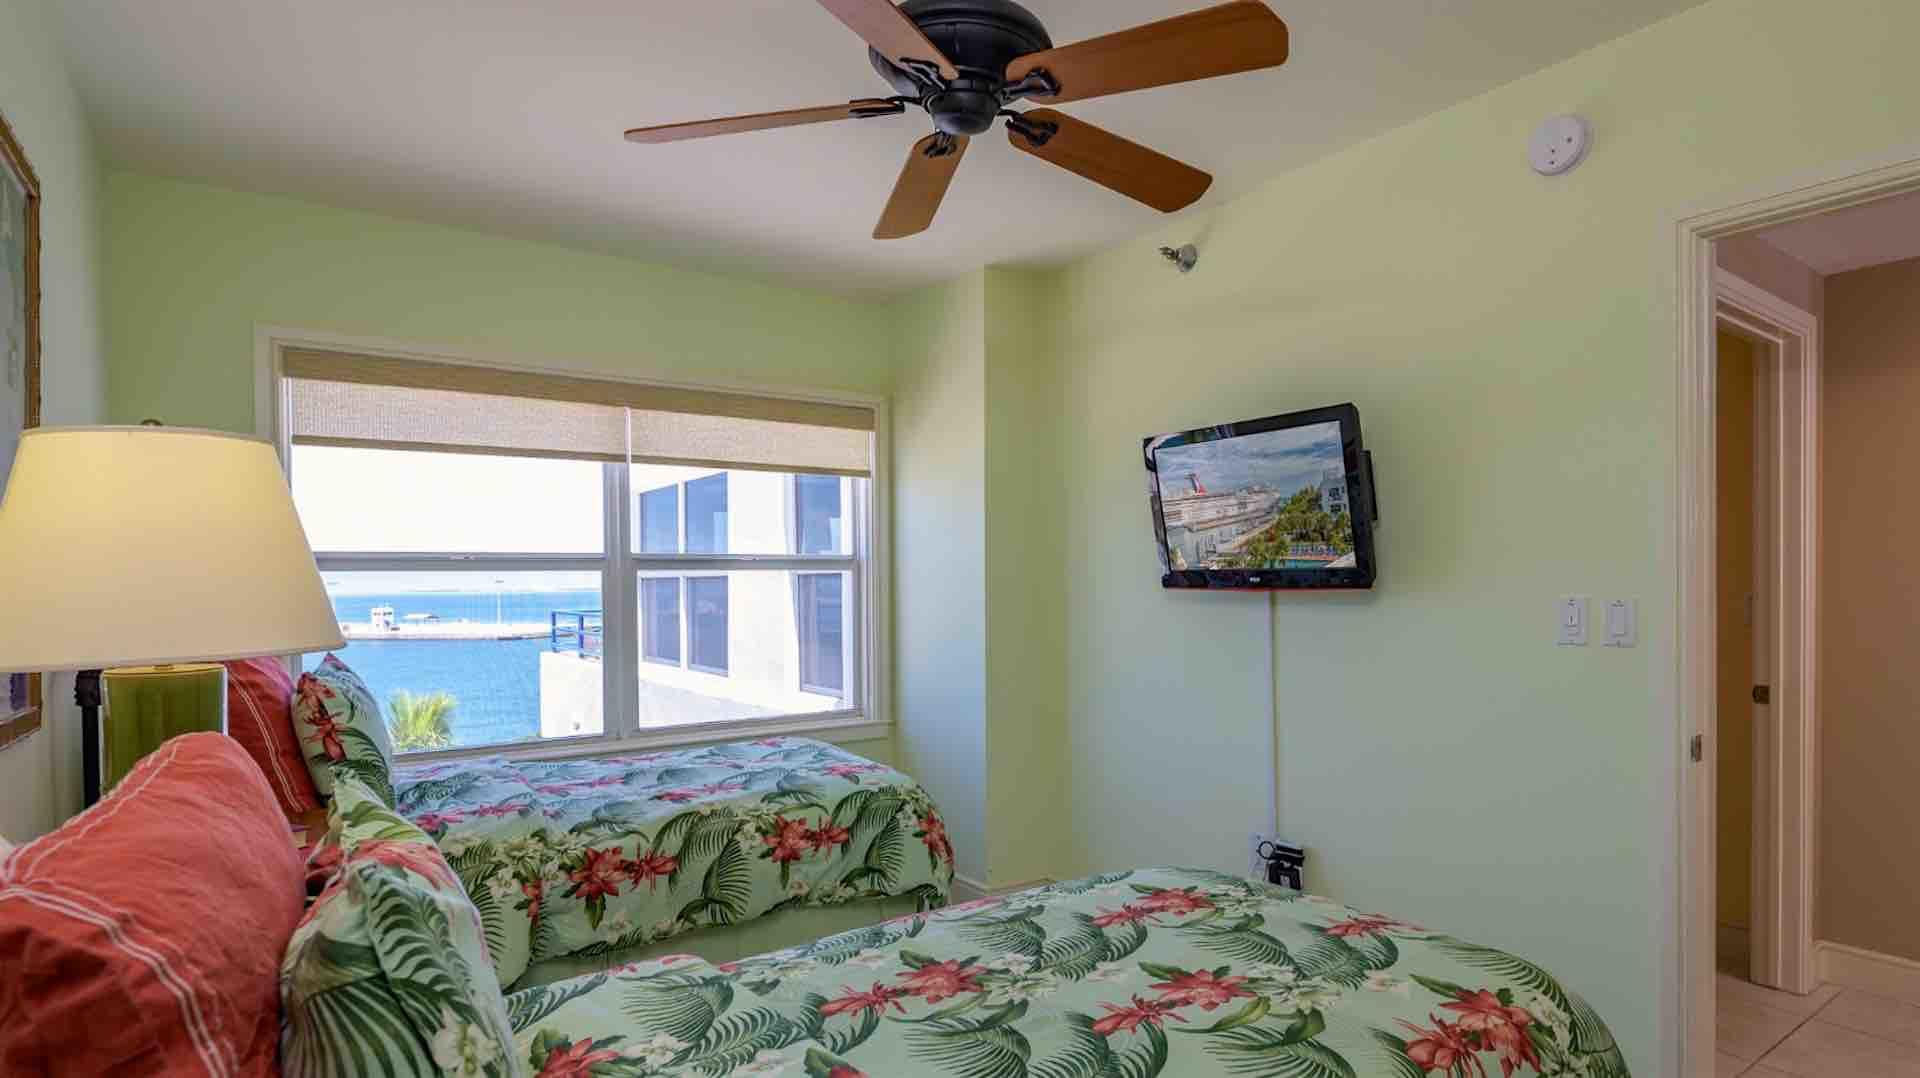 The second bedroom also has views of the ocean, overhead fan and flat screen TV...